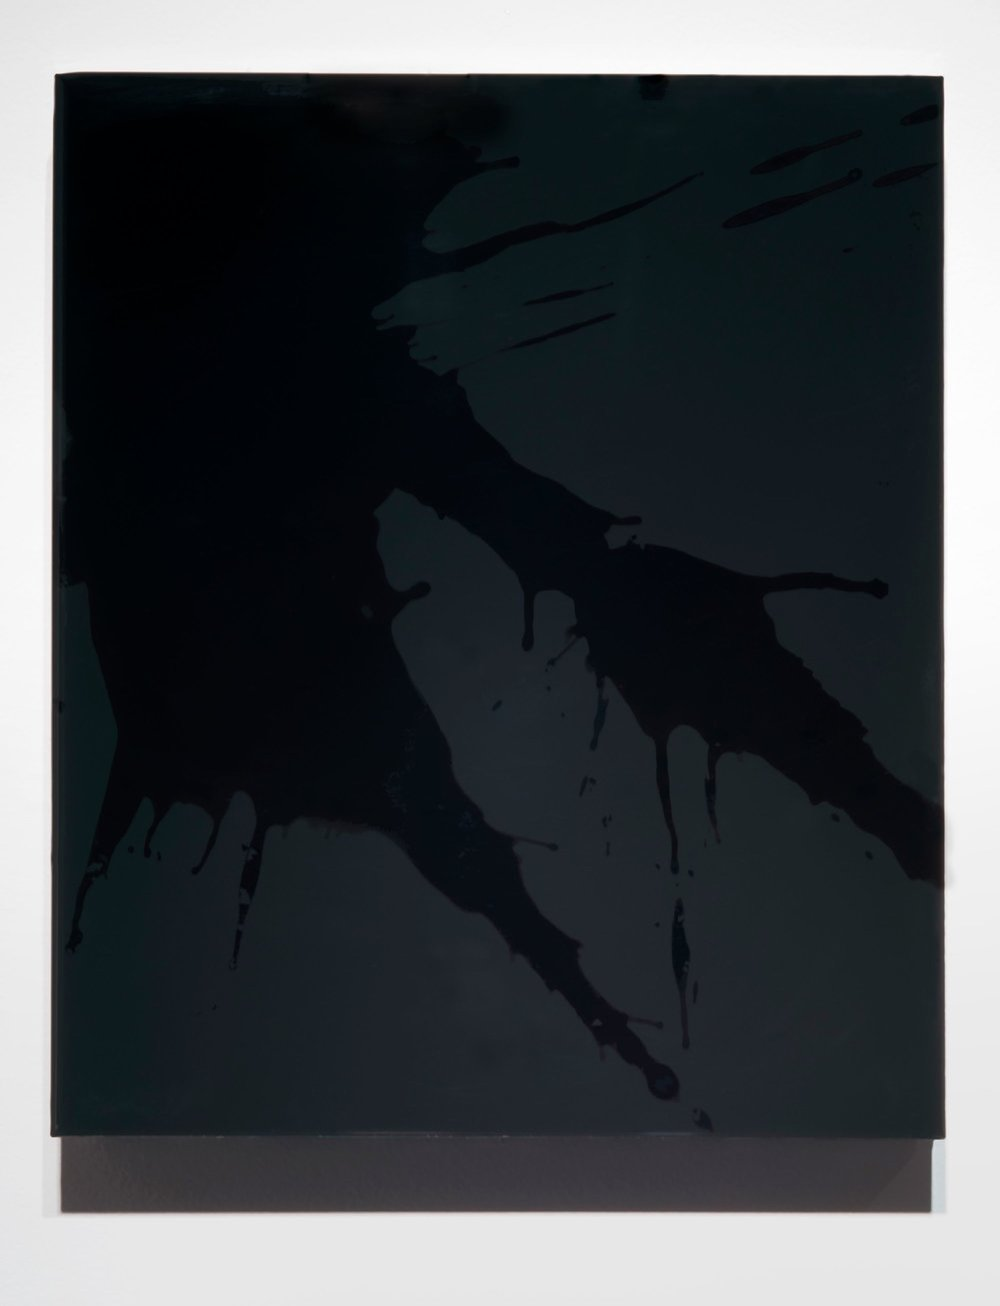 "FKBLK (Prototype 1), 2014 12 x 10 x 2"" blood, preserved on plexiglass, UV resin"